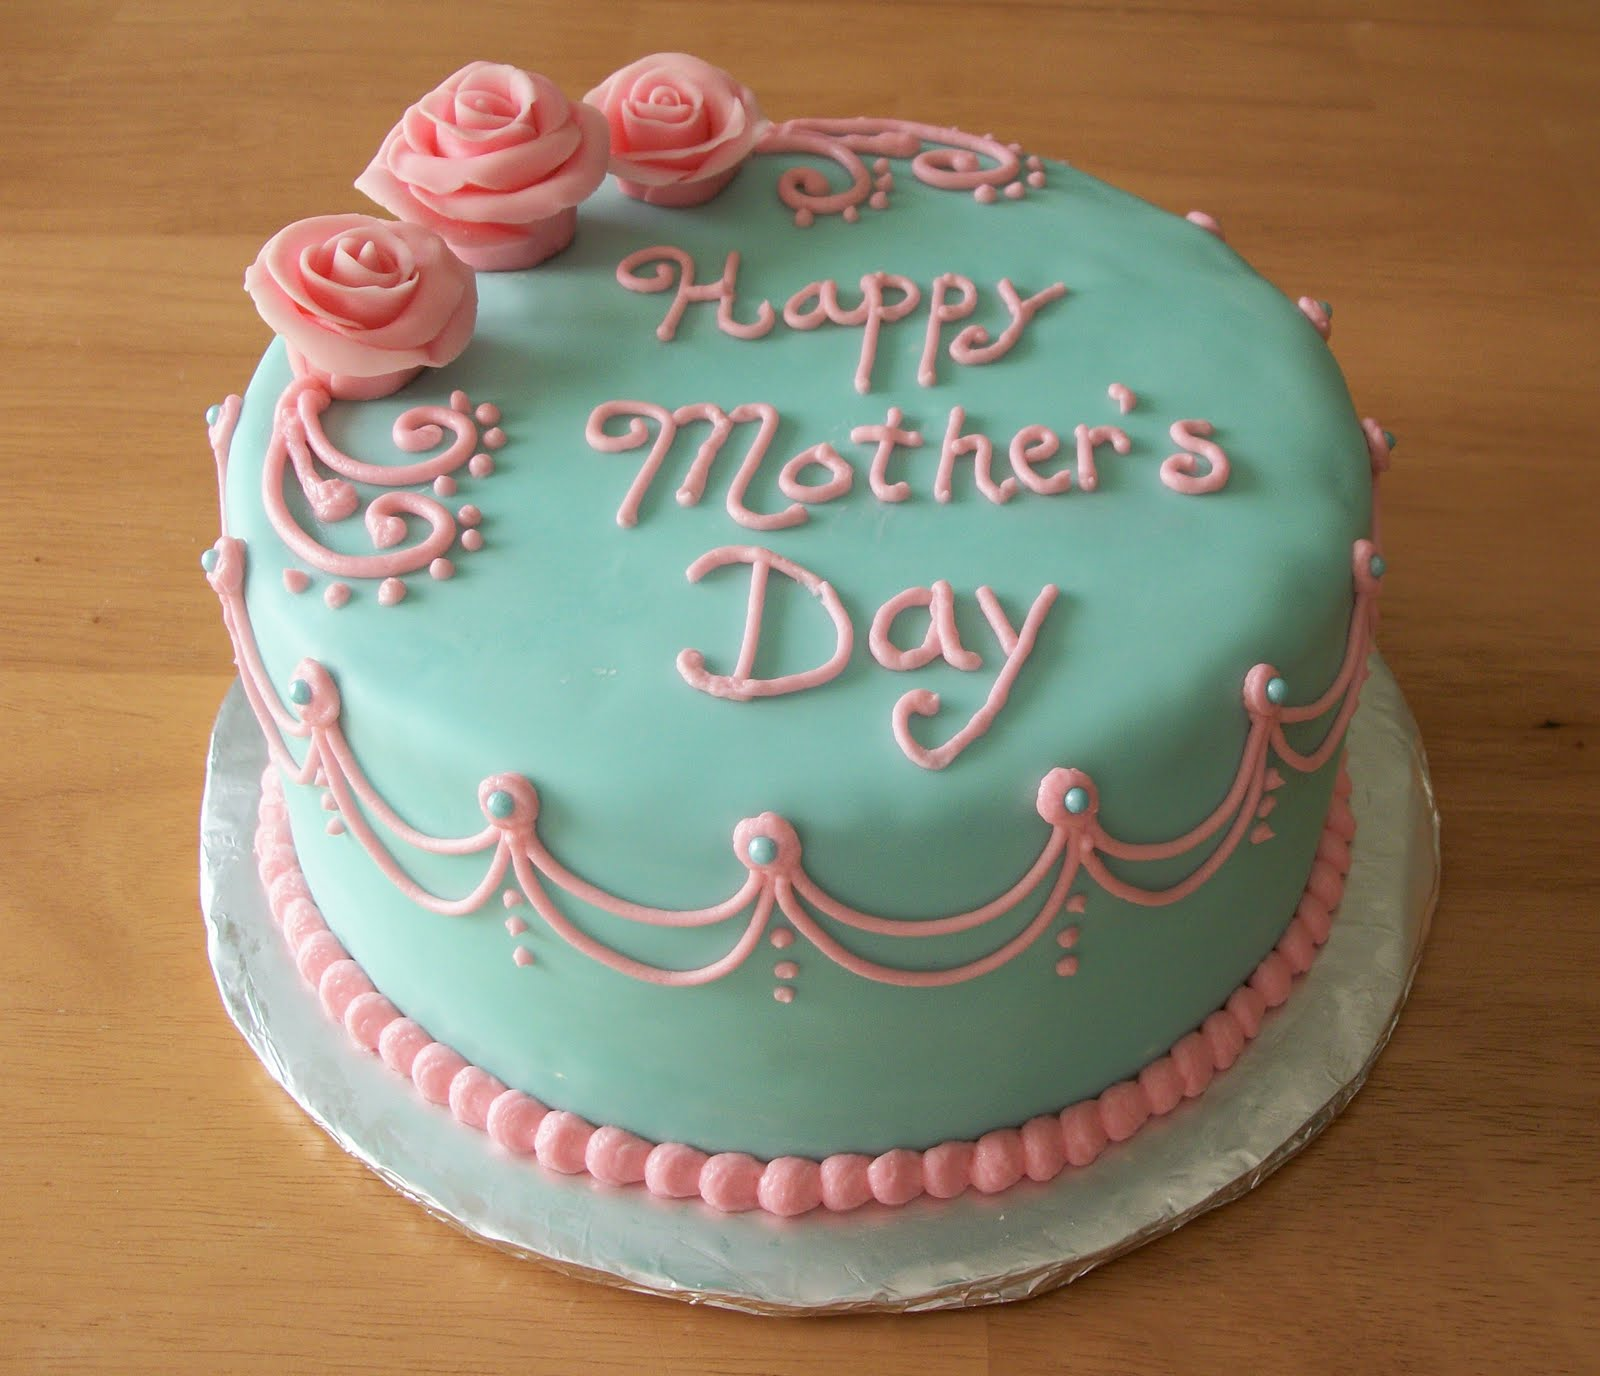 11 Photos of Mother's Day Cakes